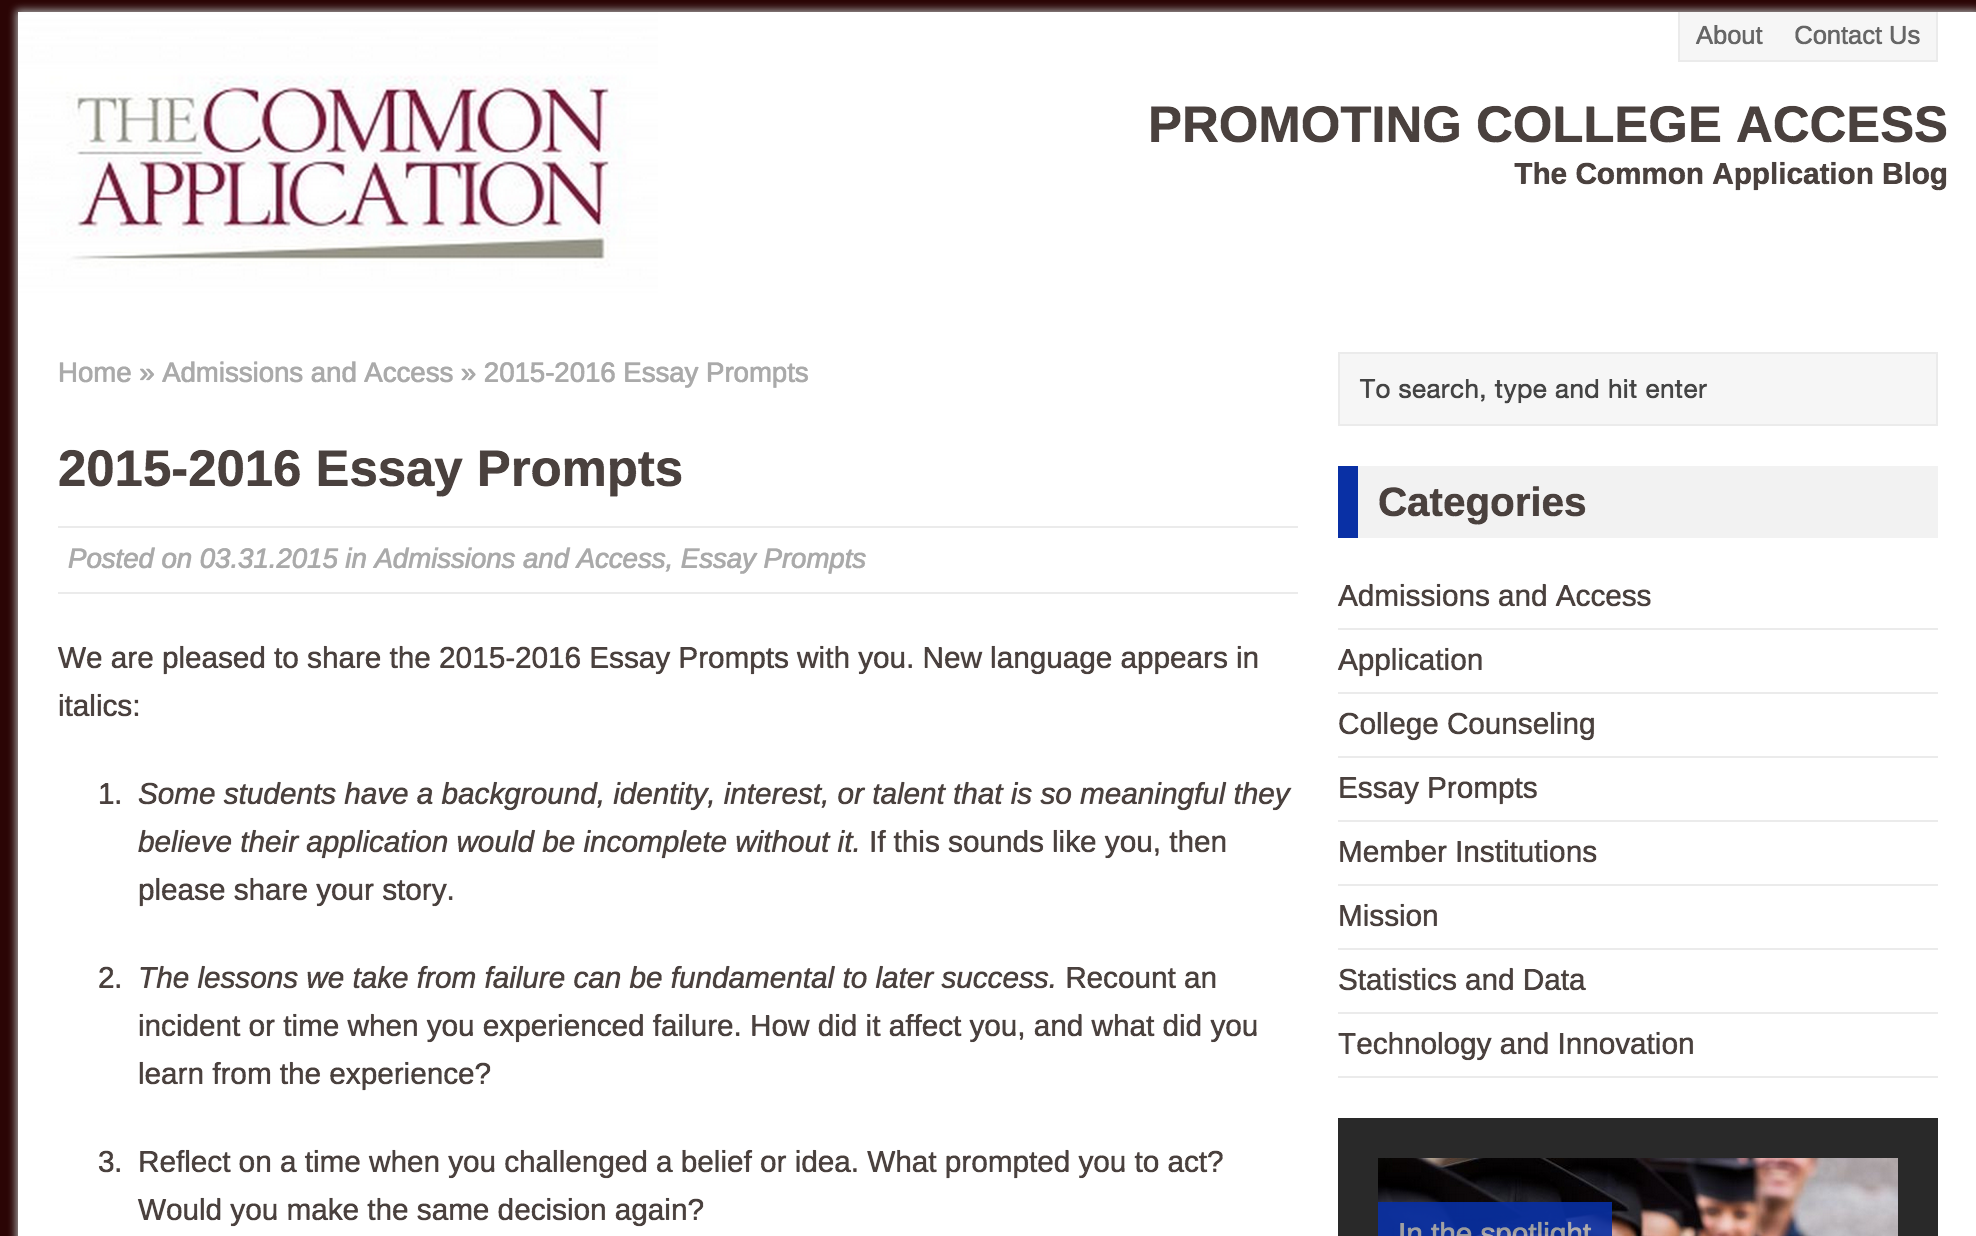 002 Essay Example Screen Shot At Pm Common App Unusual Prompt Examples 4 Prompts Word Limit Full